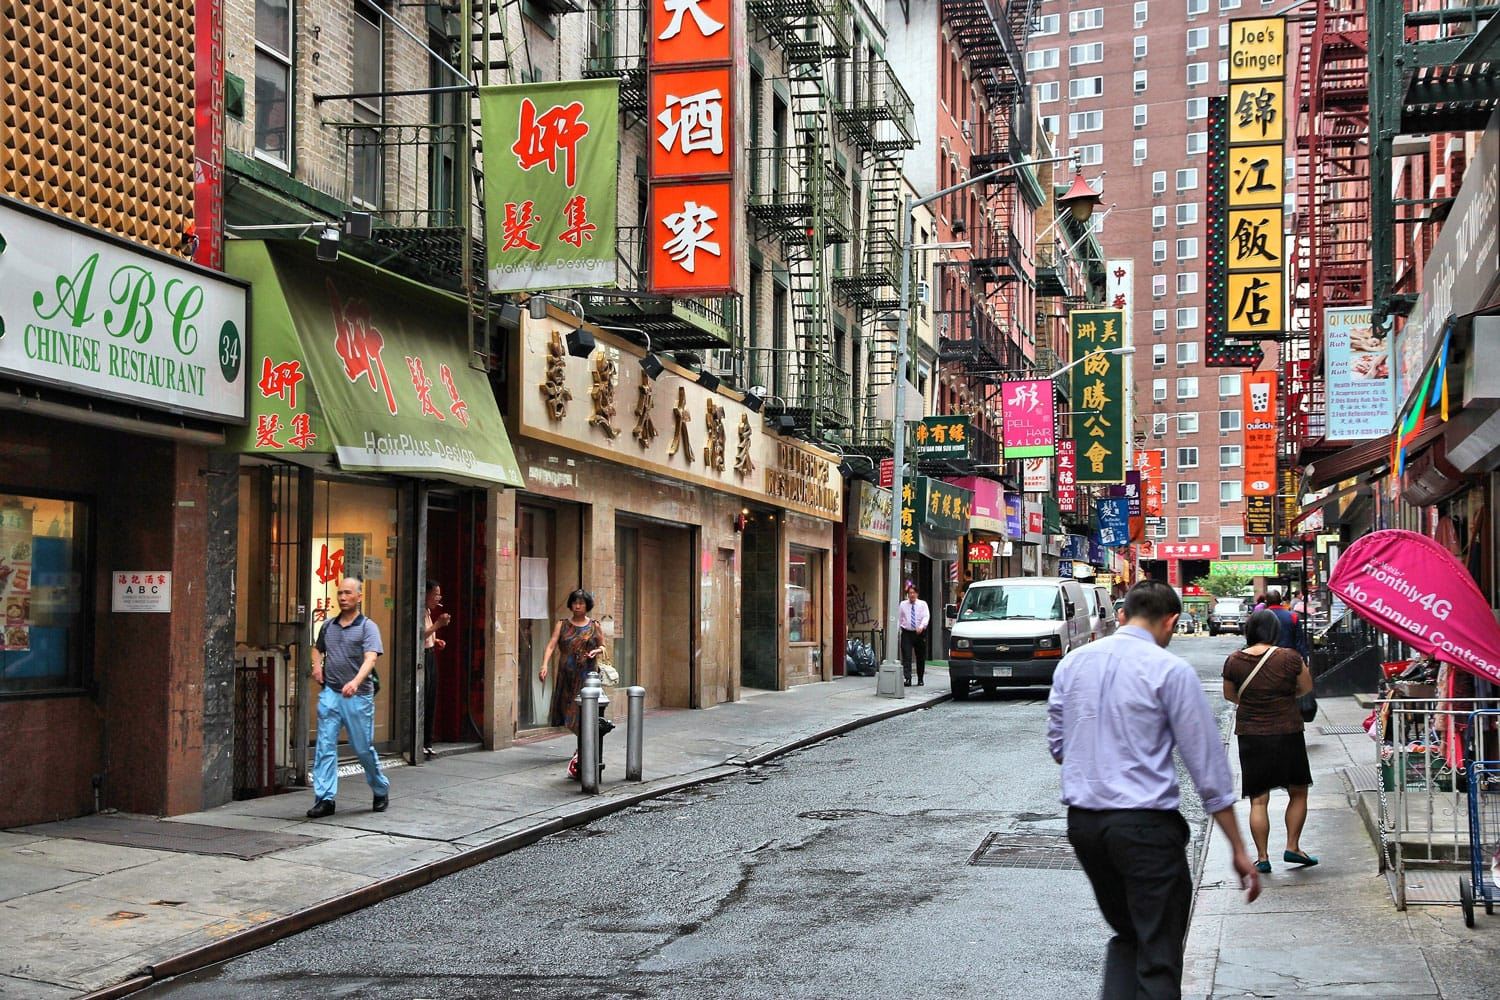 People walking in Chinatown in New York City.